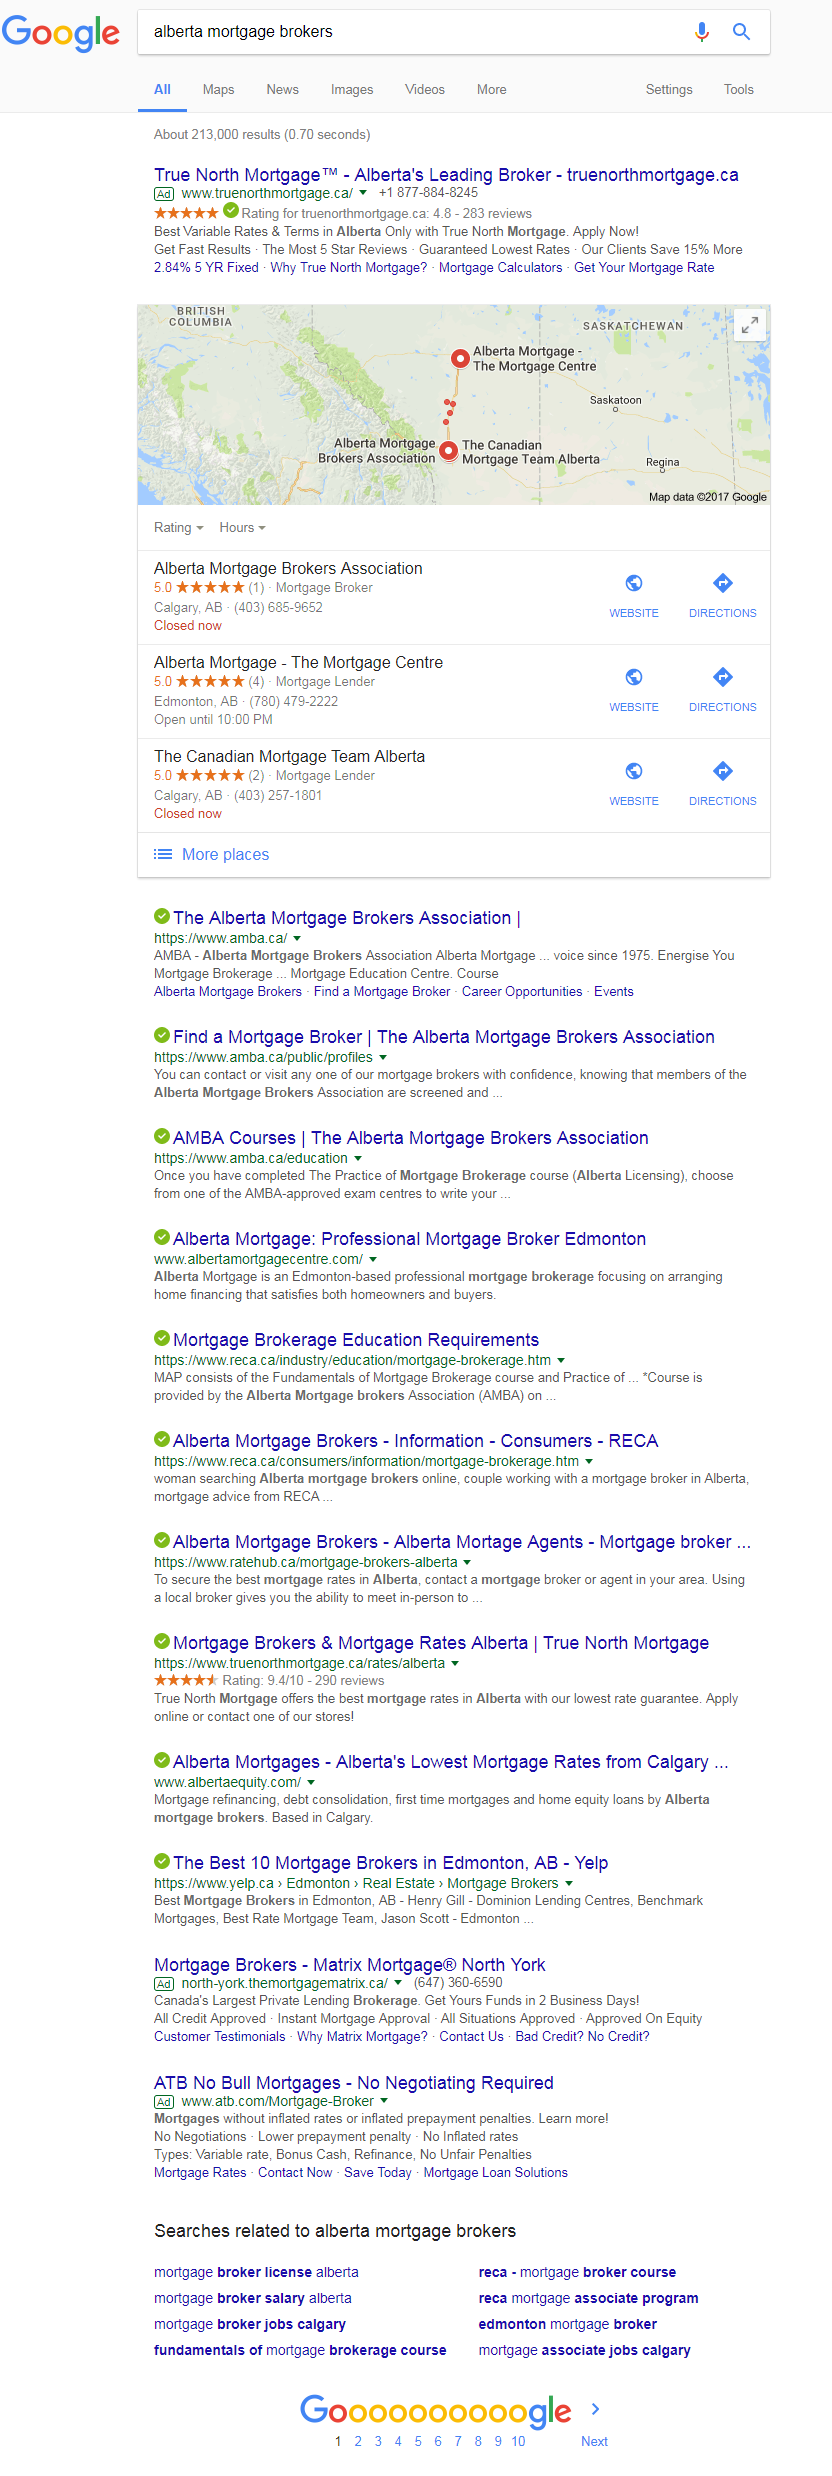 Alberta Mortgage Brokers - Results from Google